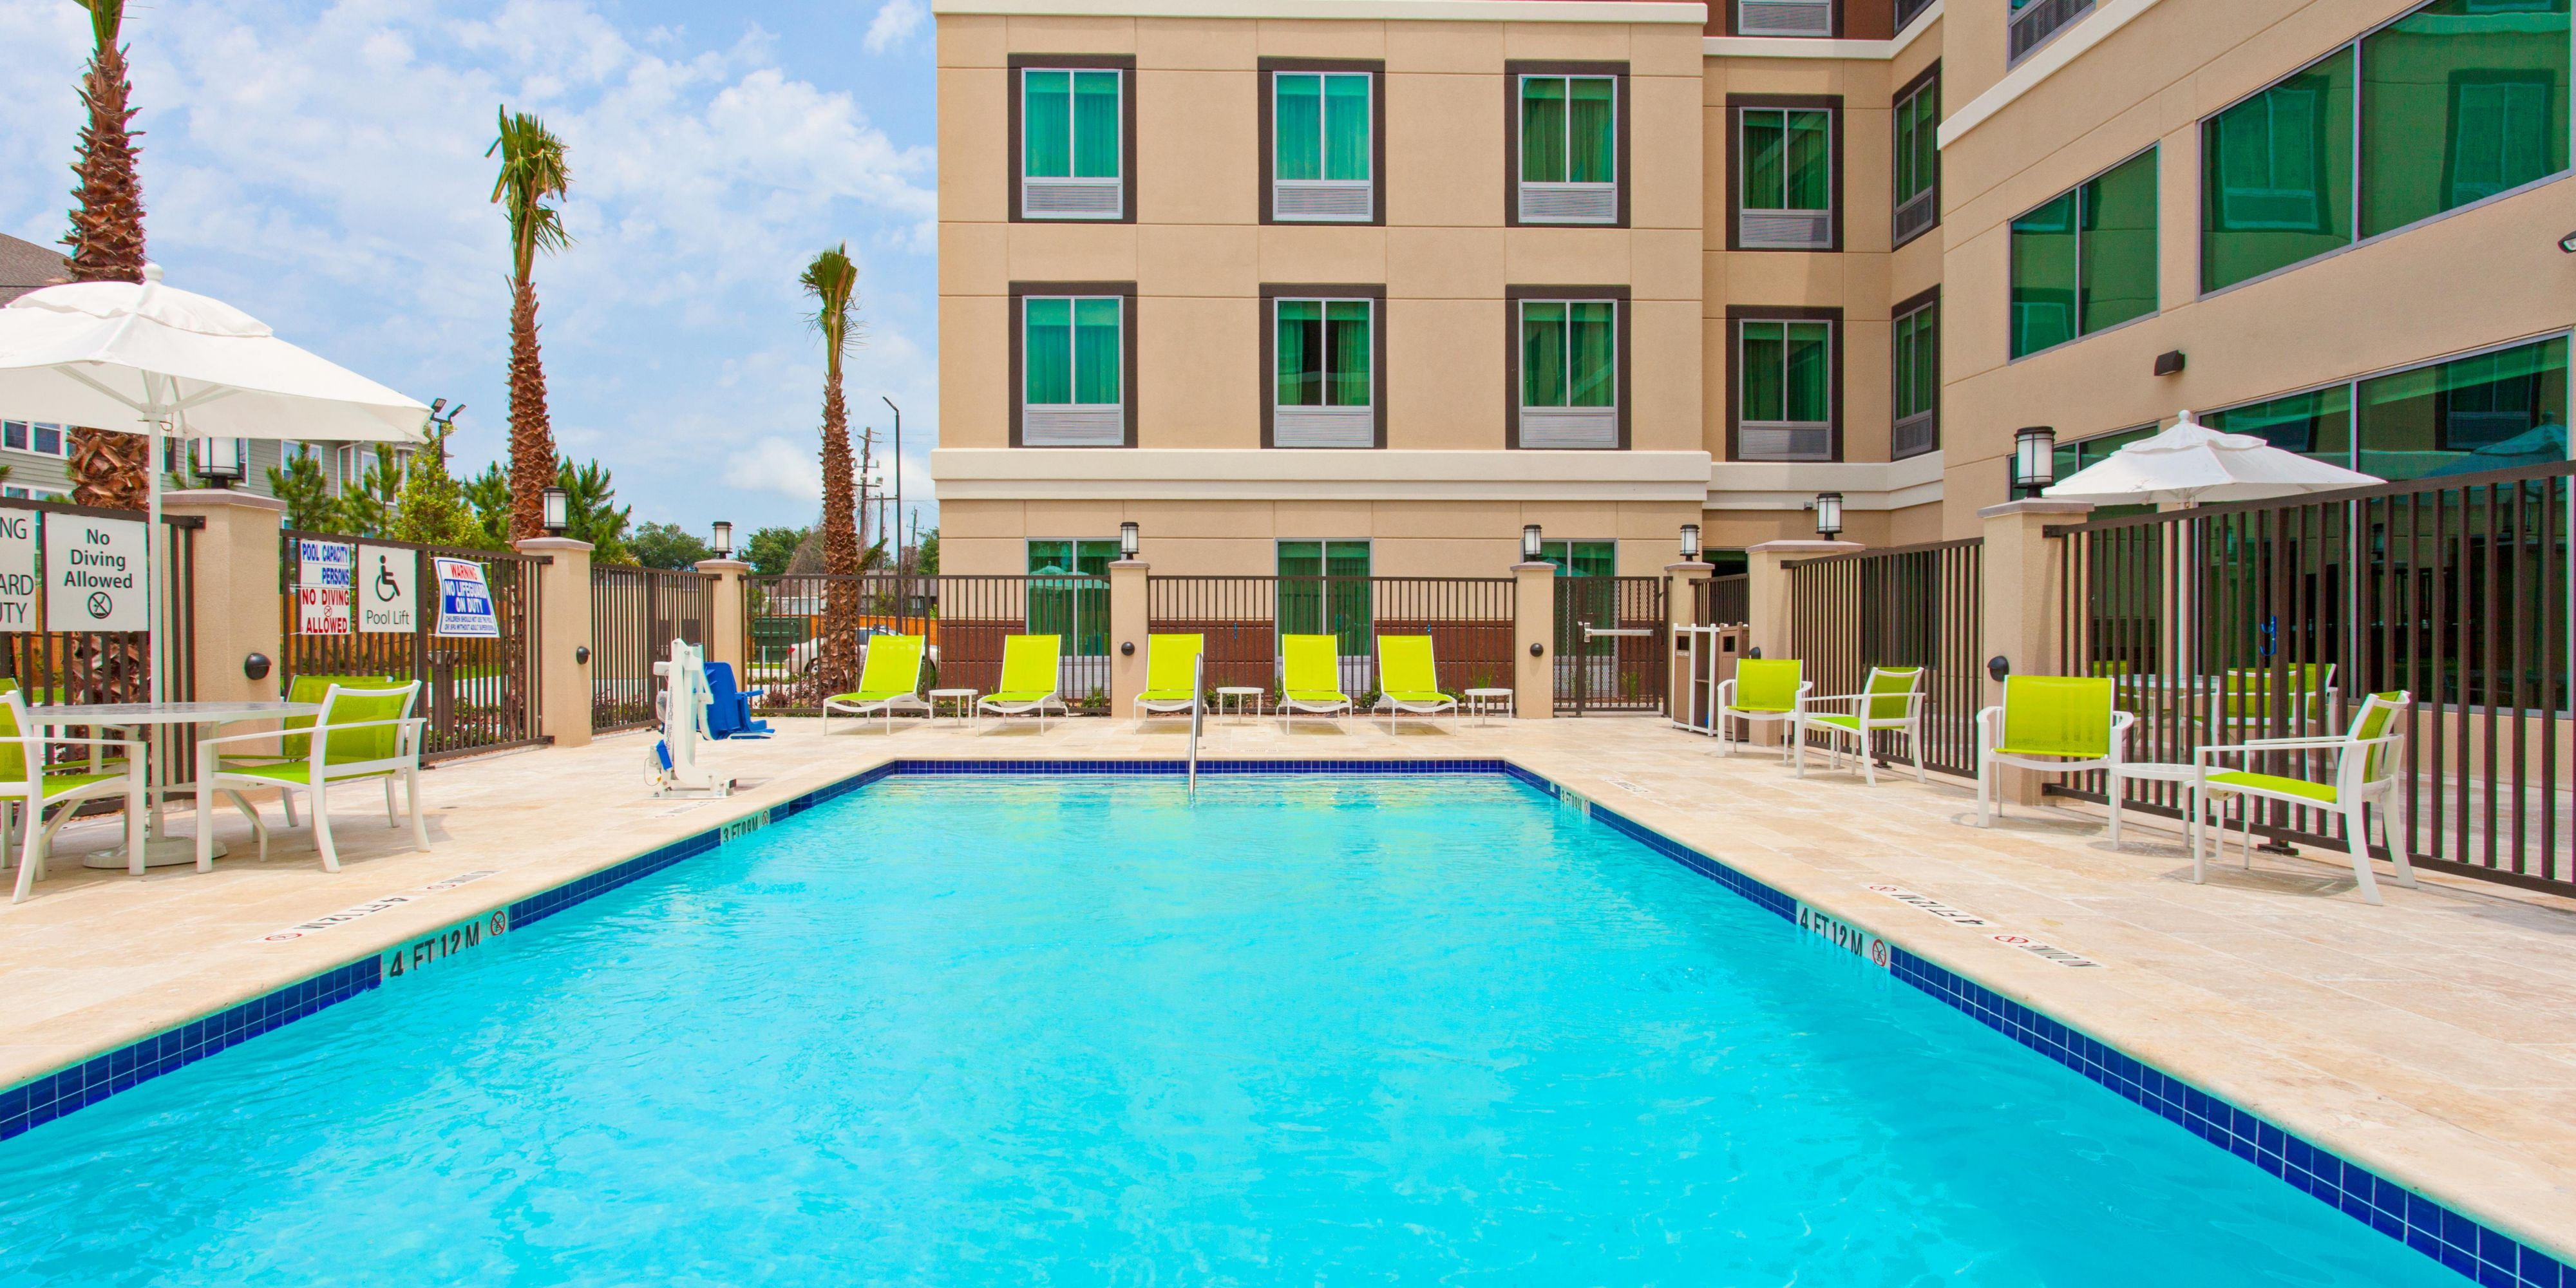 Holiday Inn Express & Suites Houston S - Medical Ctr Area Hotel by IHG